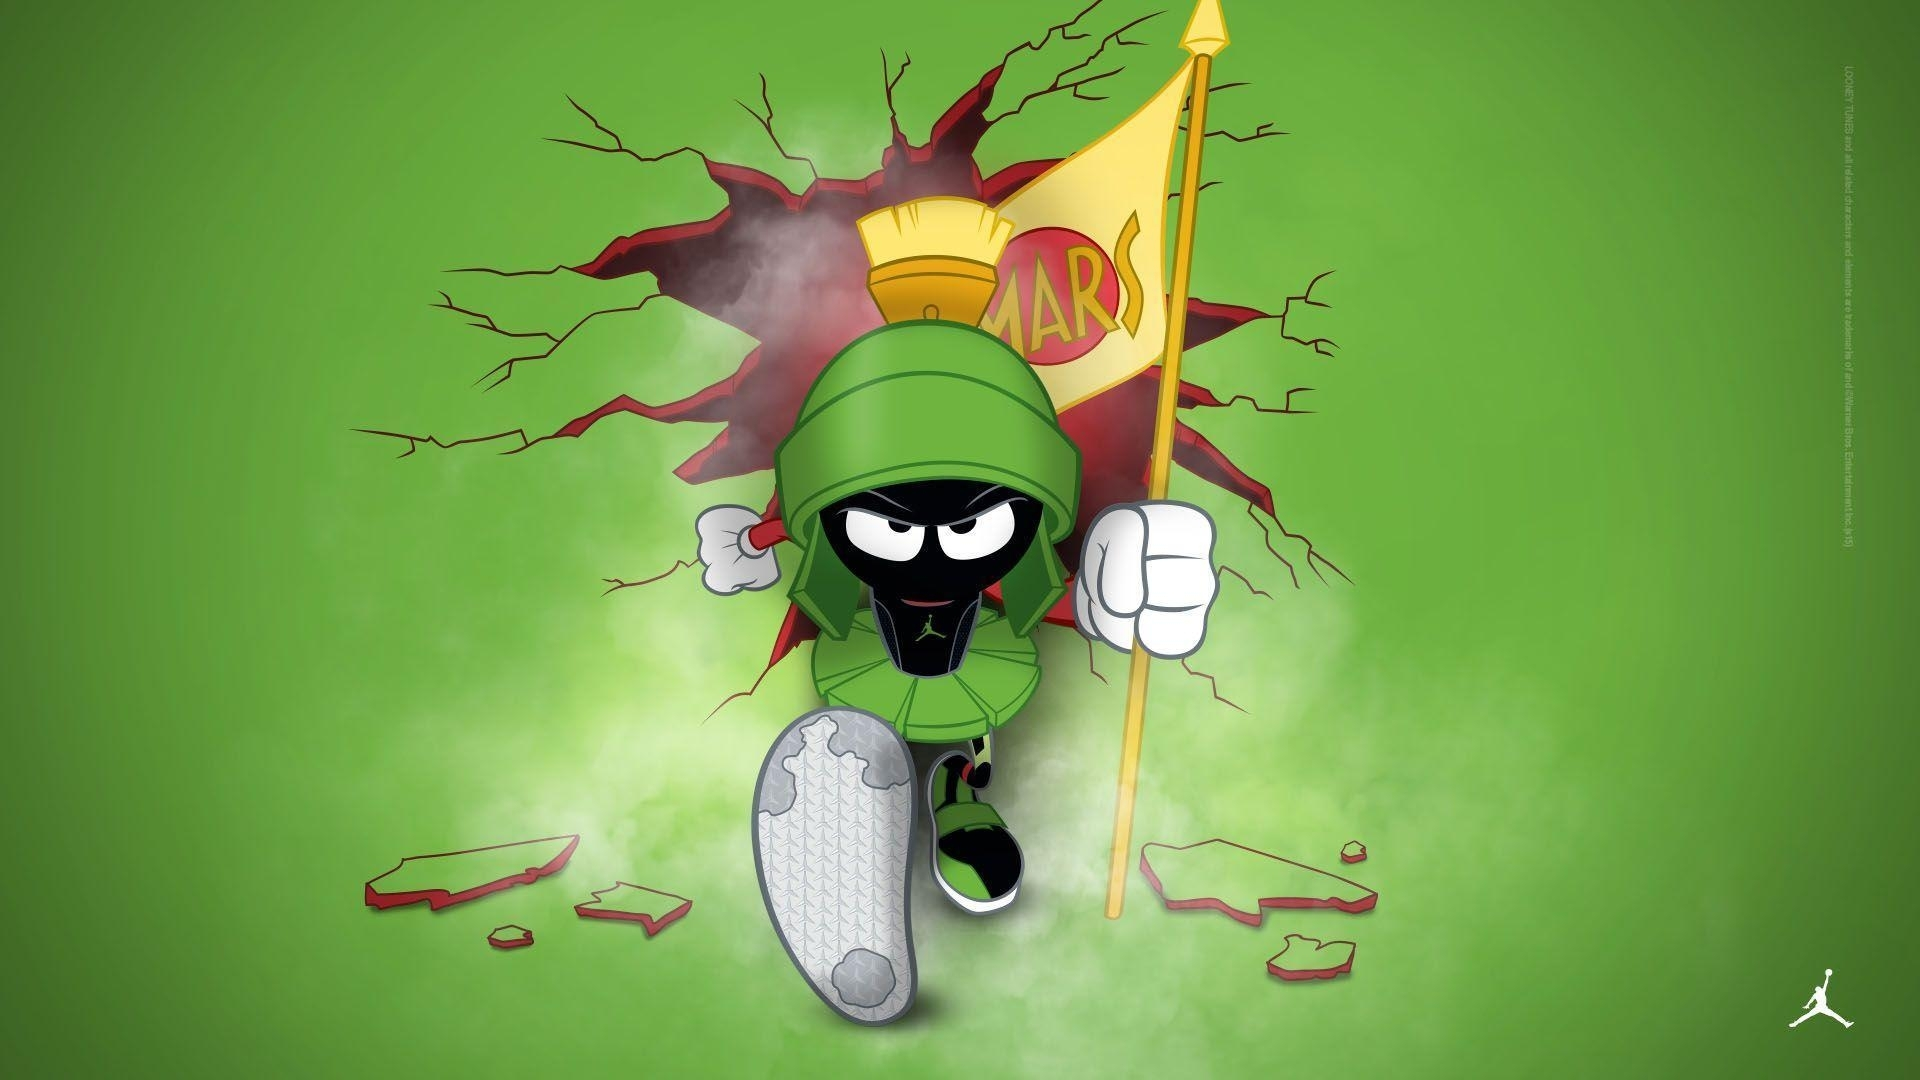 marvin the martian wallpapers - wallpaper cave